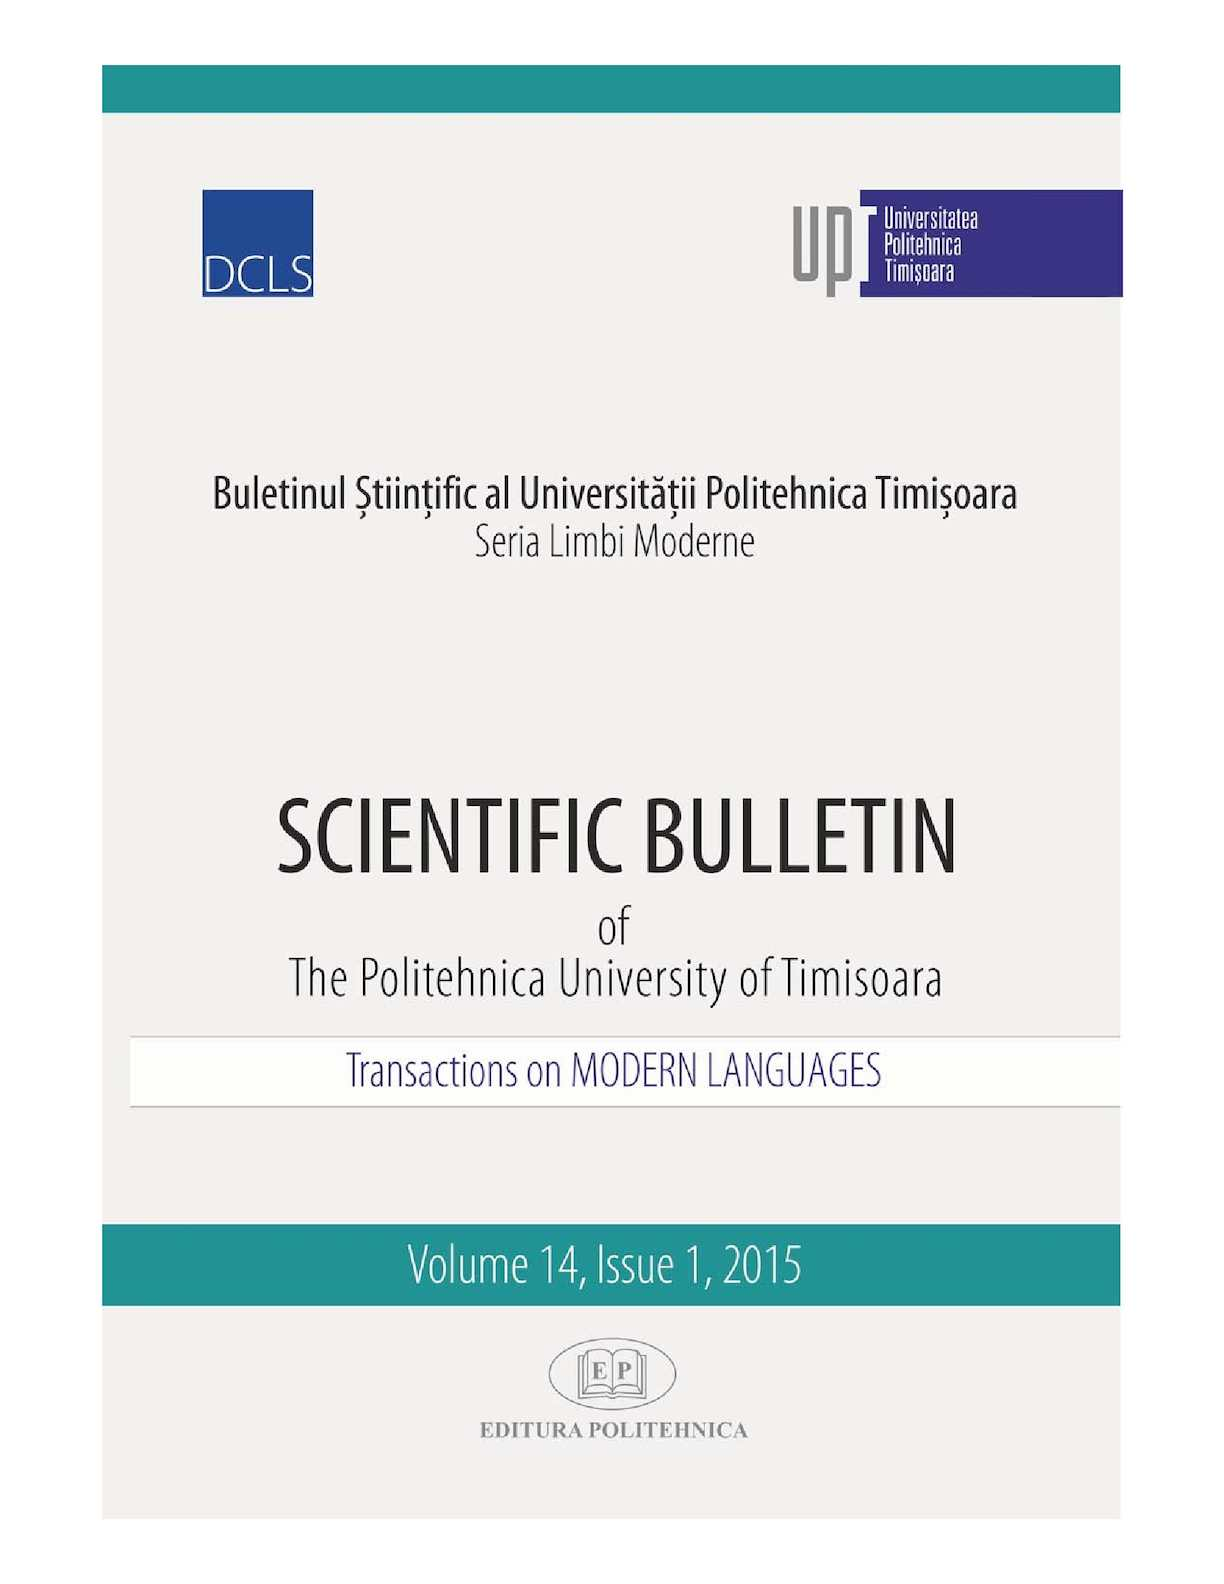 Calaméo Scientific Bulletin Transactions On Modern Languages